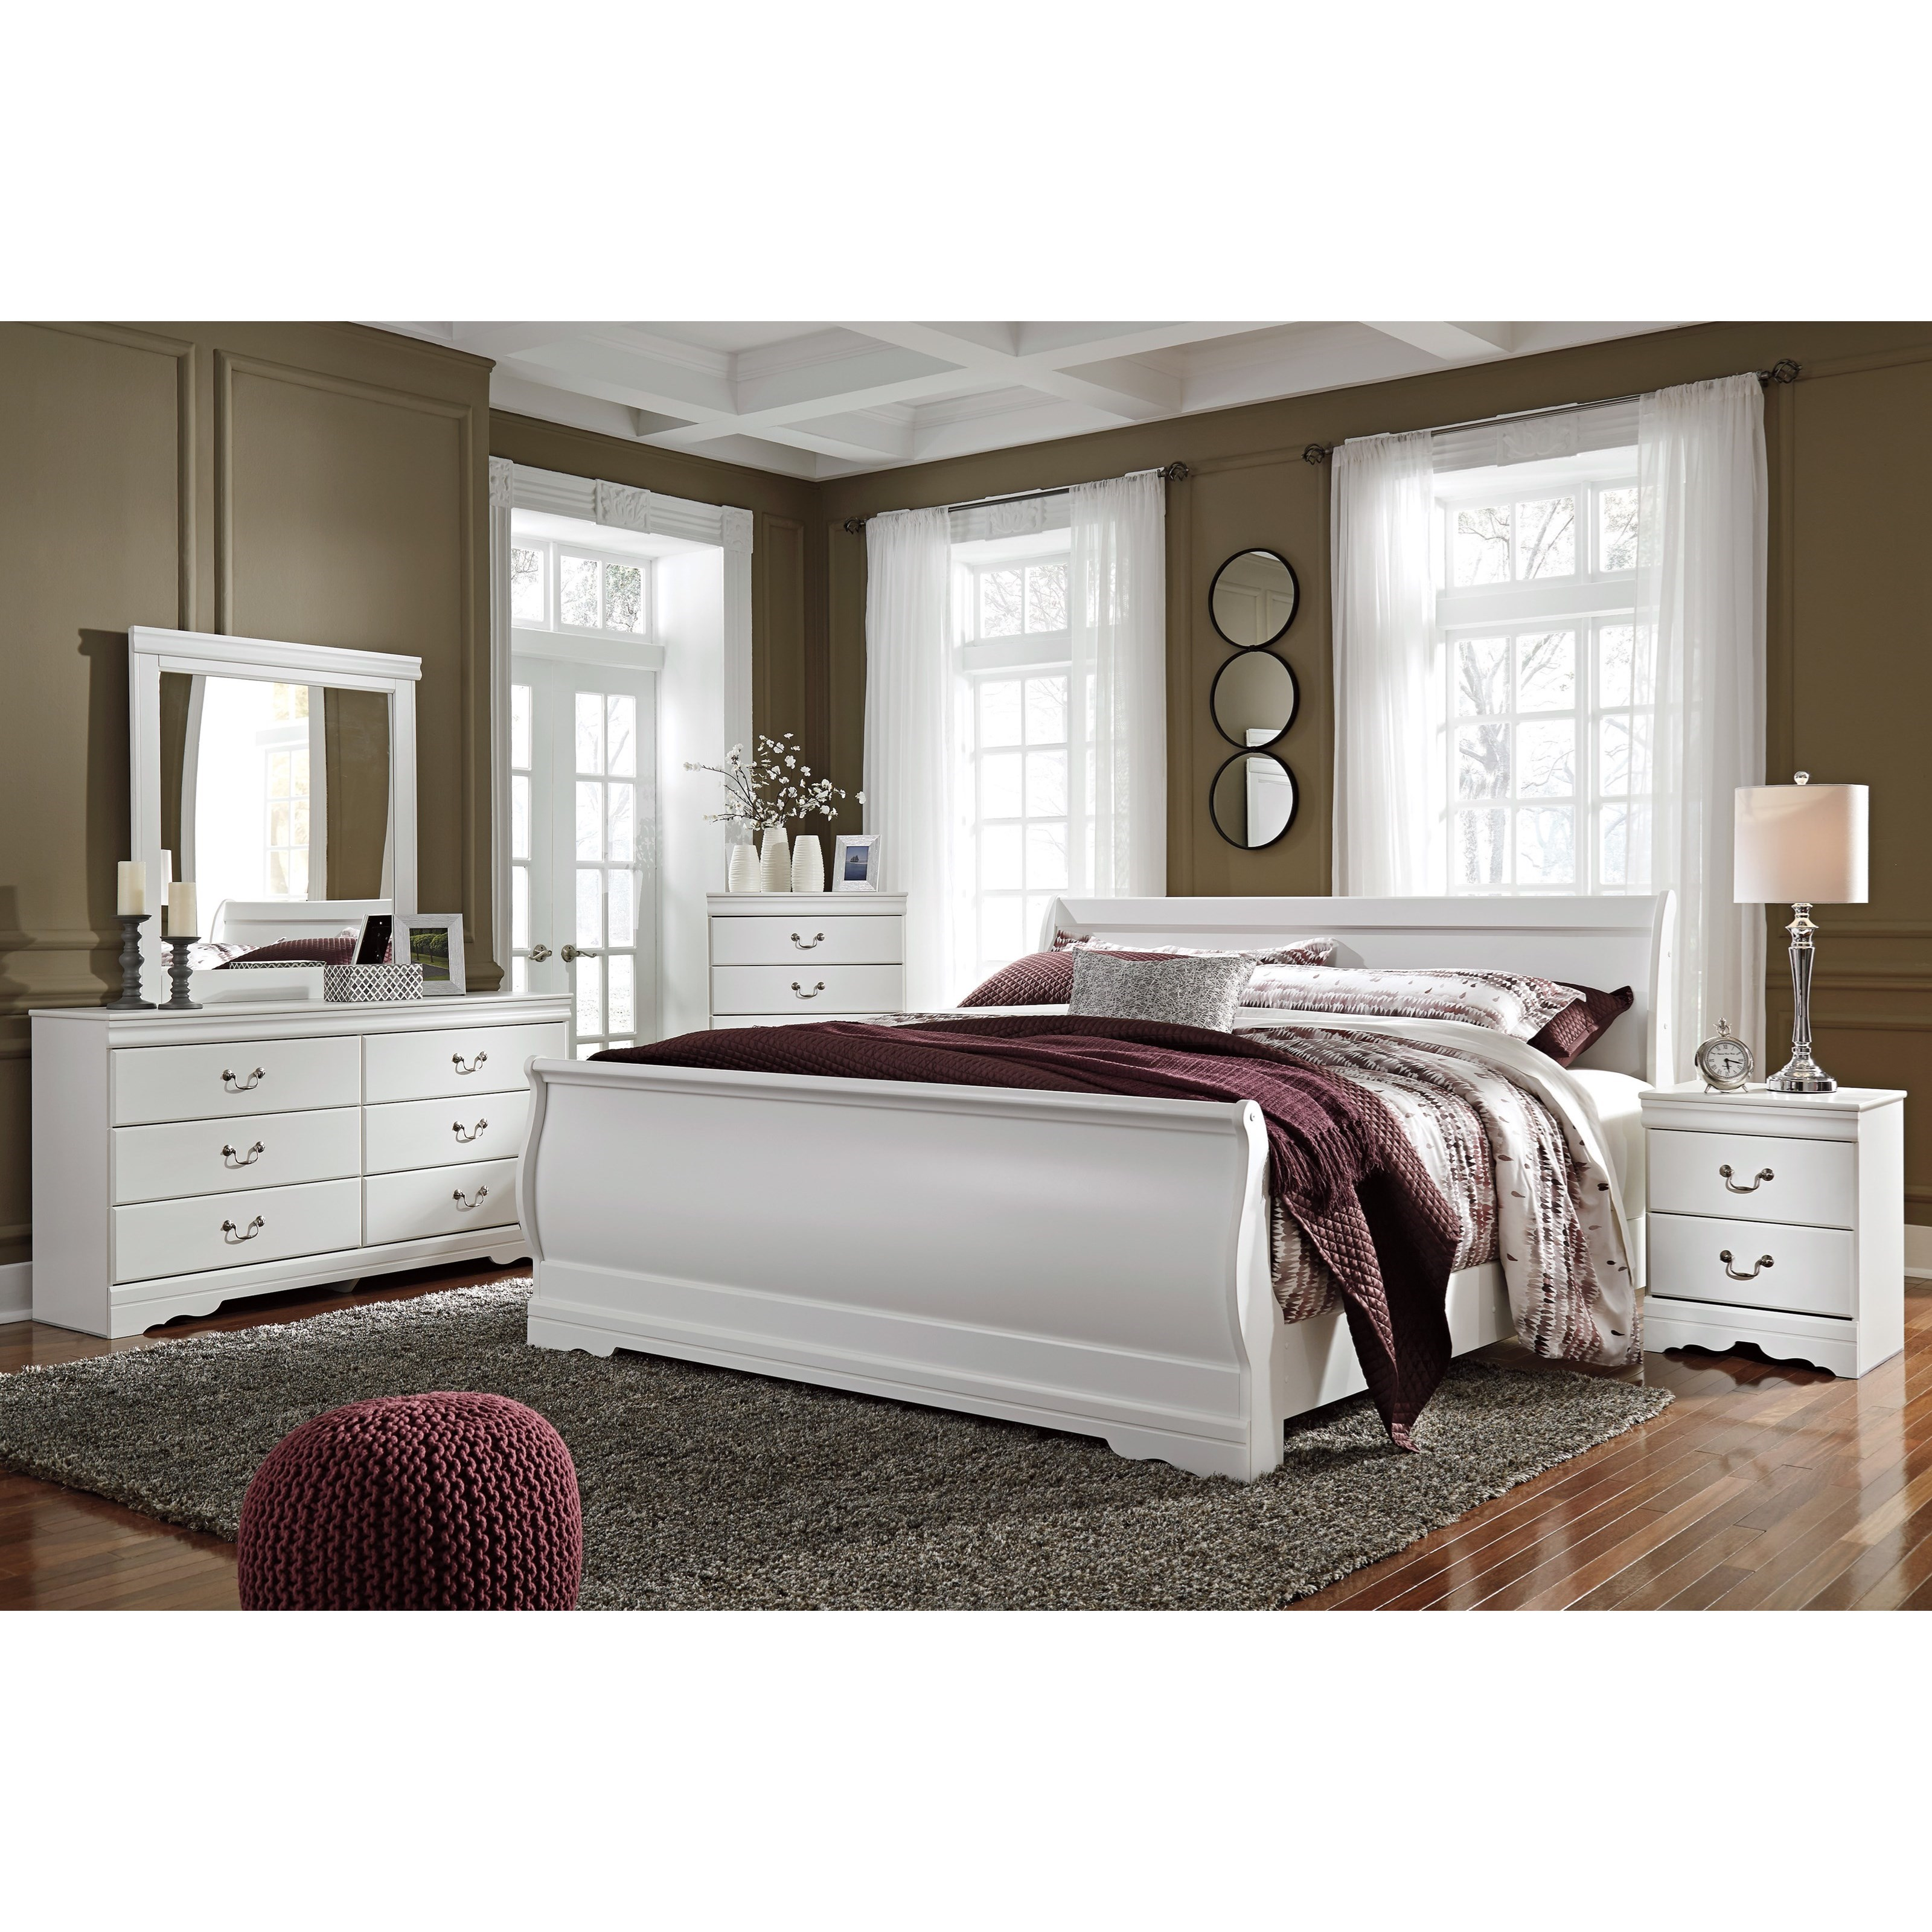 Signature design by ashley anarasia 4 piece king bedroom for Bedroom furniture groups